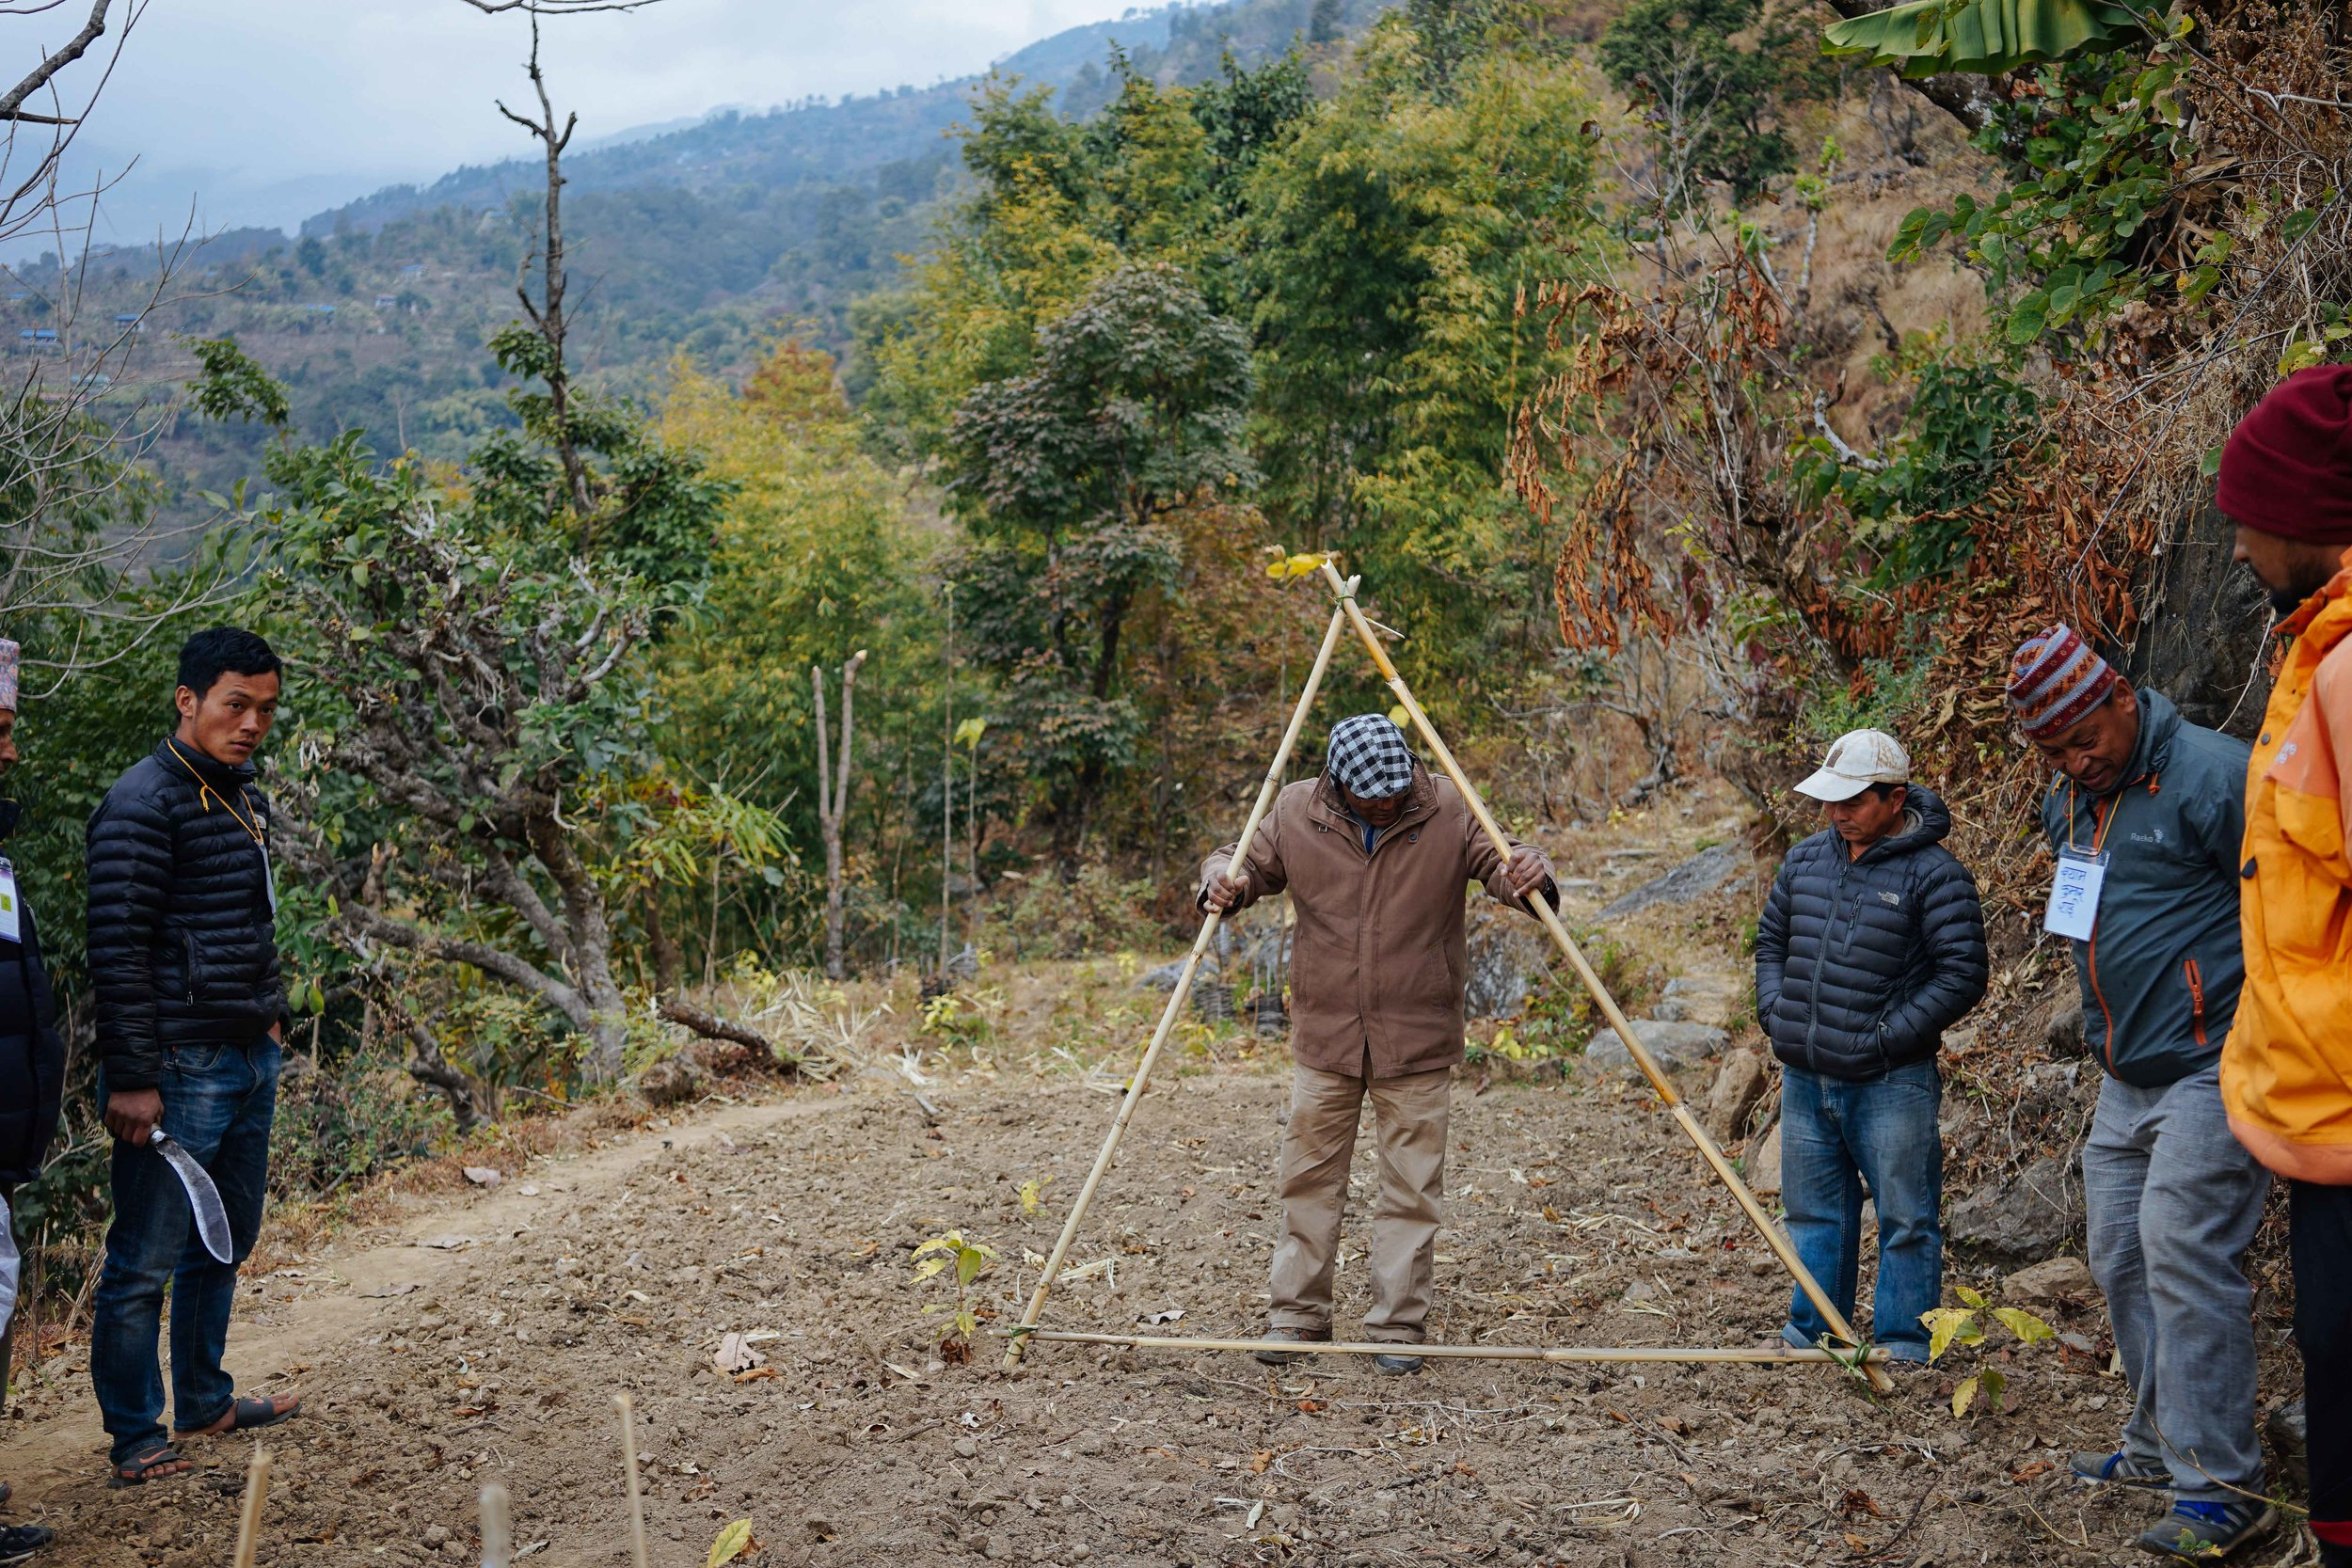 TGT funds training workshops where farmers are taught how to plant, grow, pick and process their coffee. When planting, the trees need to be an exact distance apart as coffee expert Bhola Shrestha from HELVETAS demonstrates here.